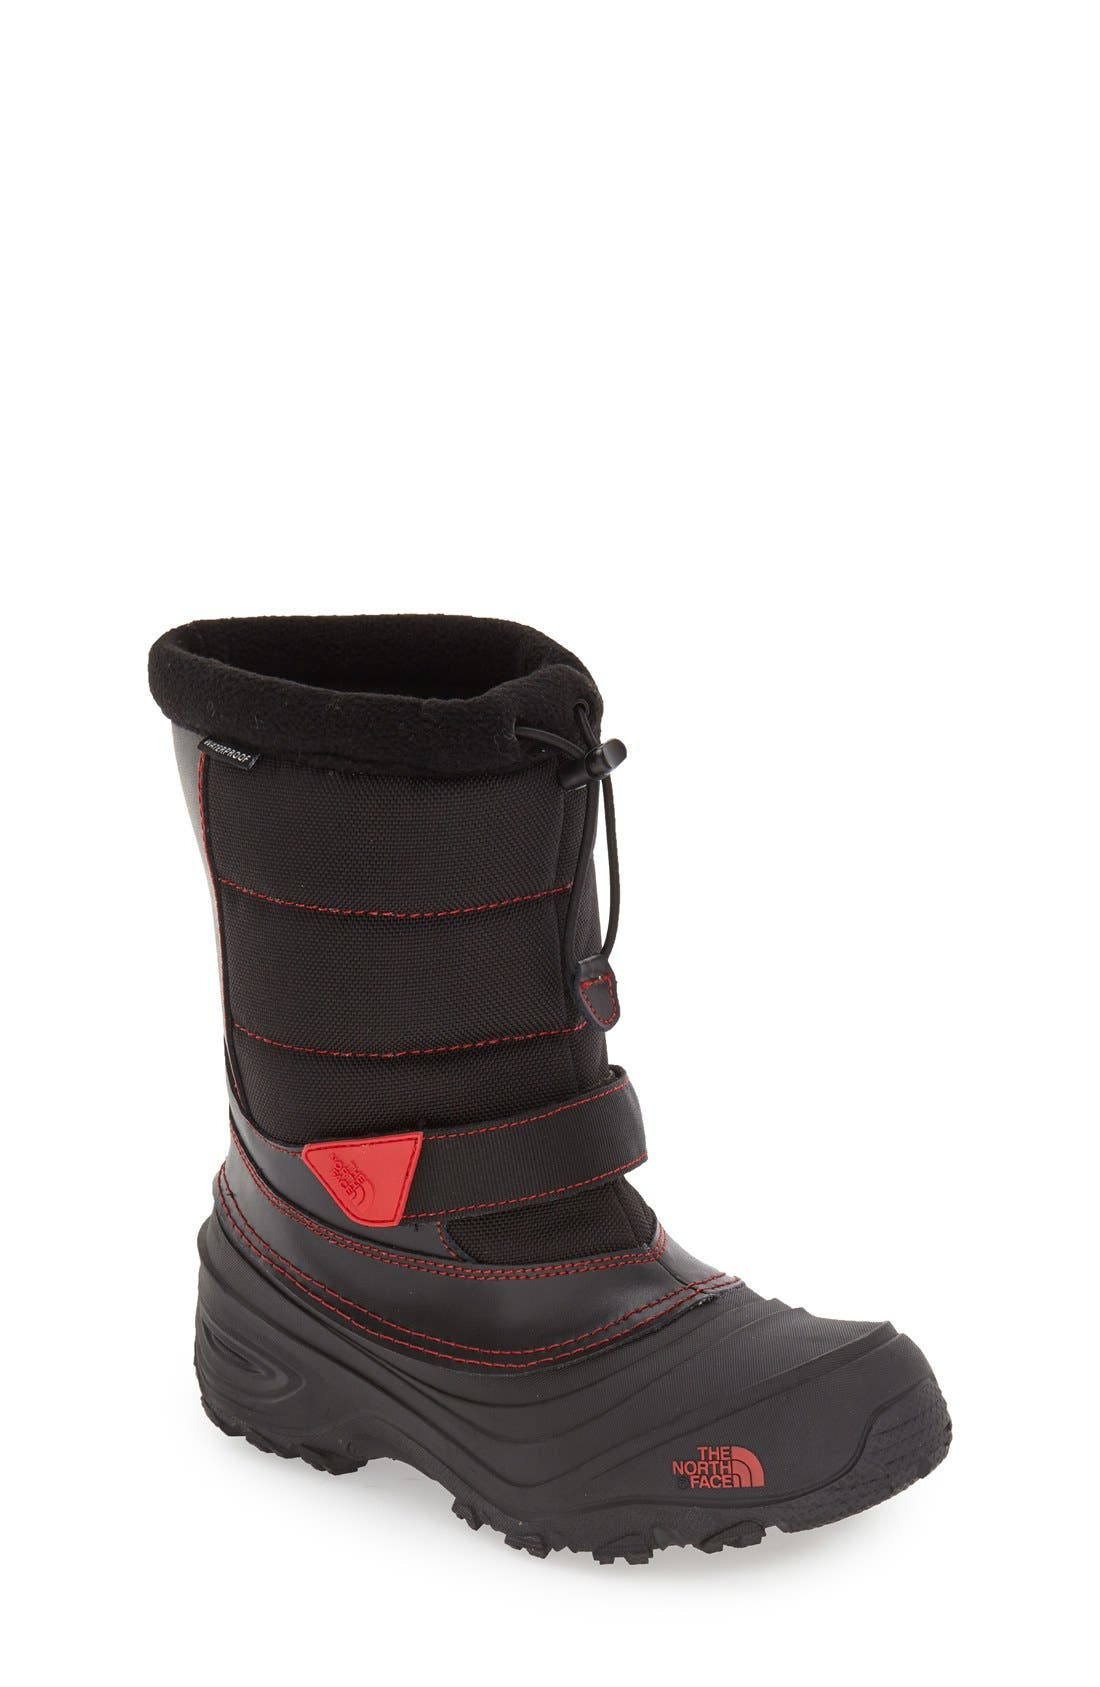 'Alpenglow Extreme II' Waterproof Snow Boot,                         Main,                         color, Black/ Red